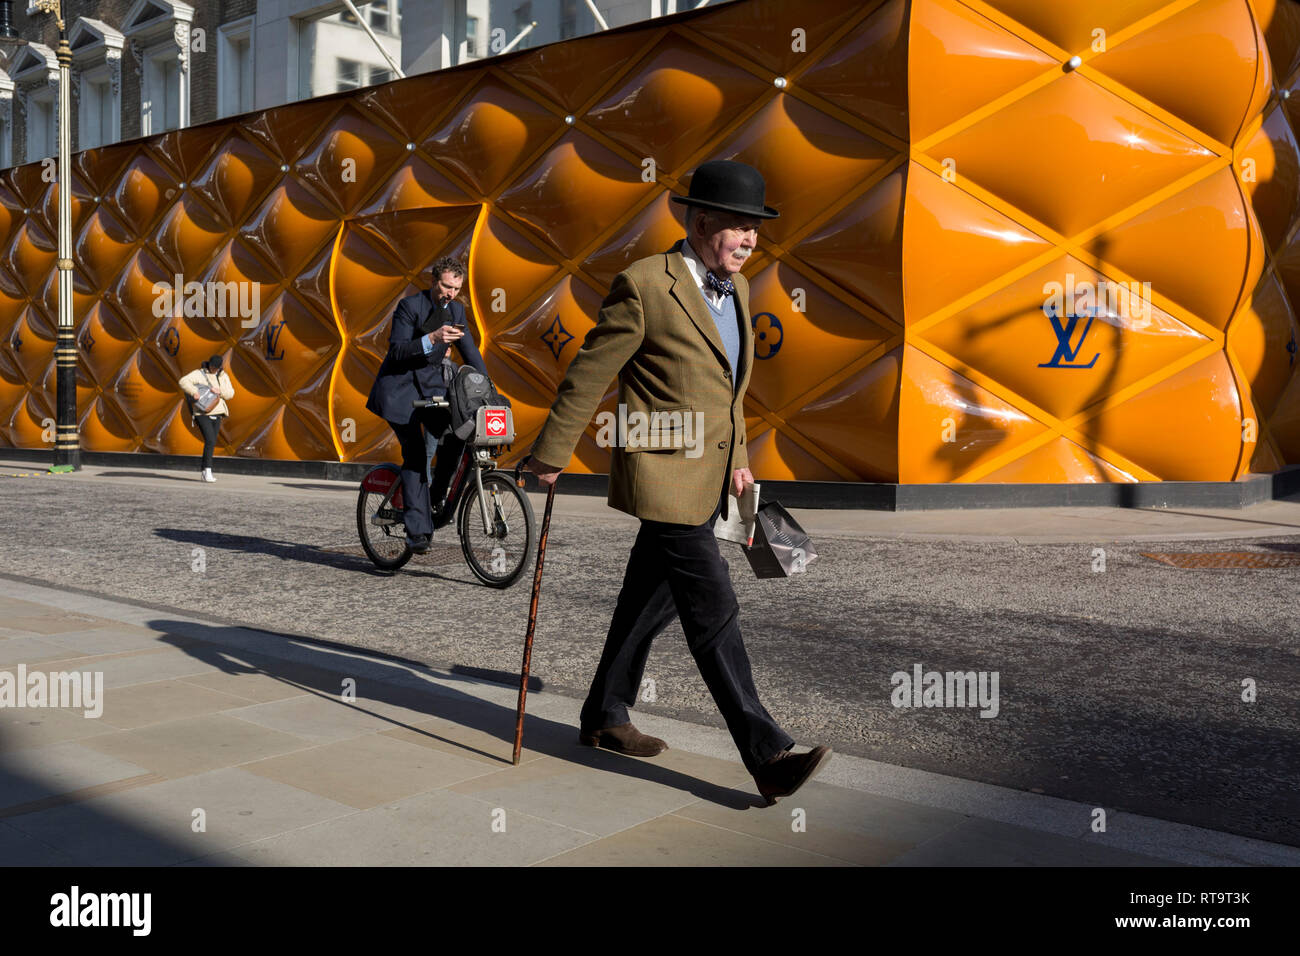 A classically-dressed English gentleman walks past the temporary renovation hoarding of luxury brand Louis Vuitton in New Bond Street, on 27th February 2019, in London, England. - Stock Image